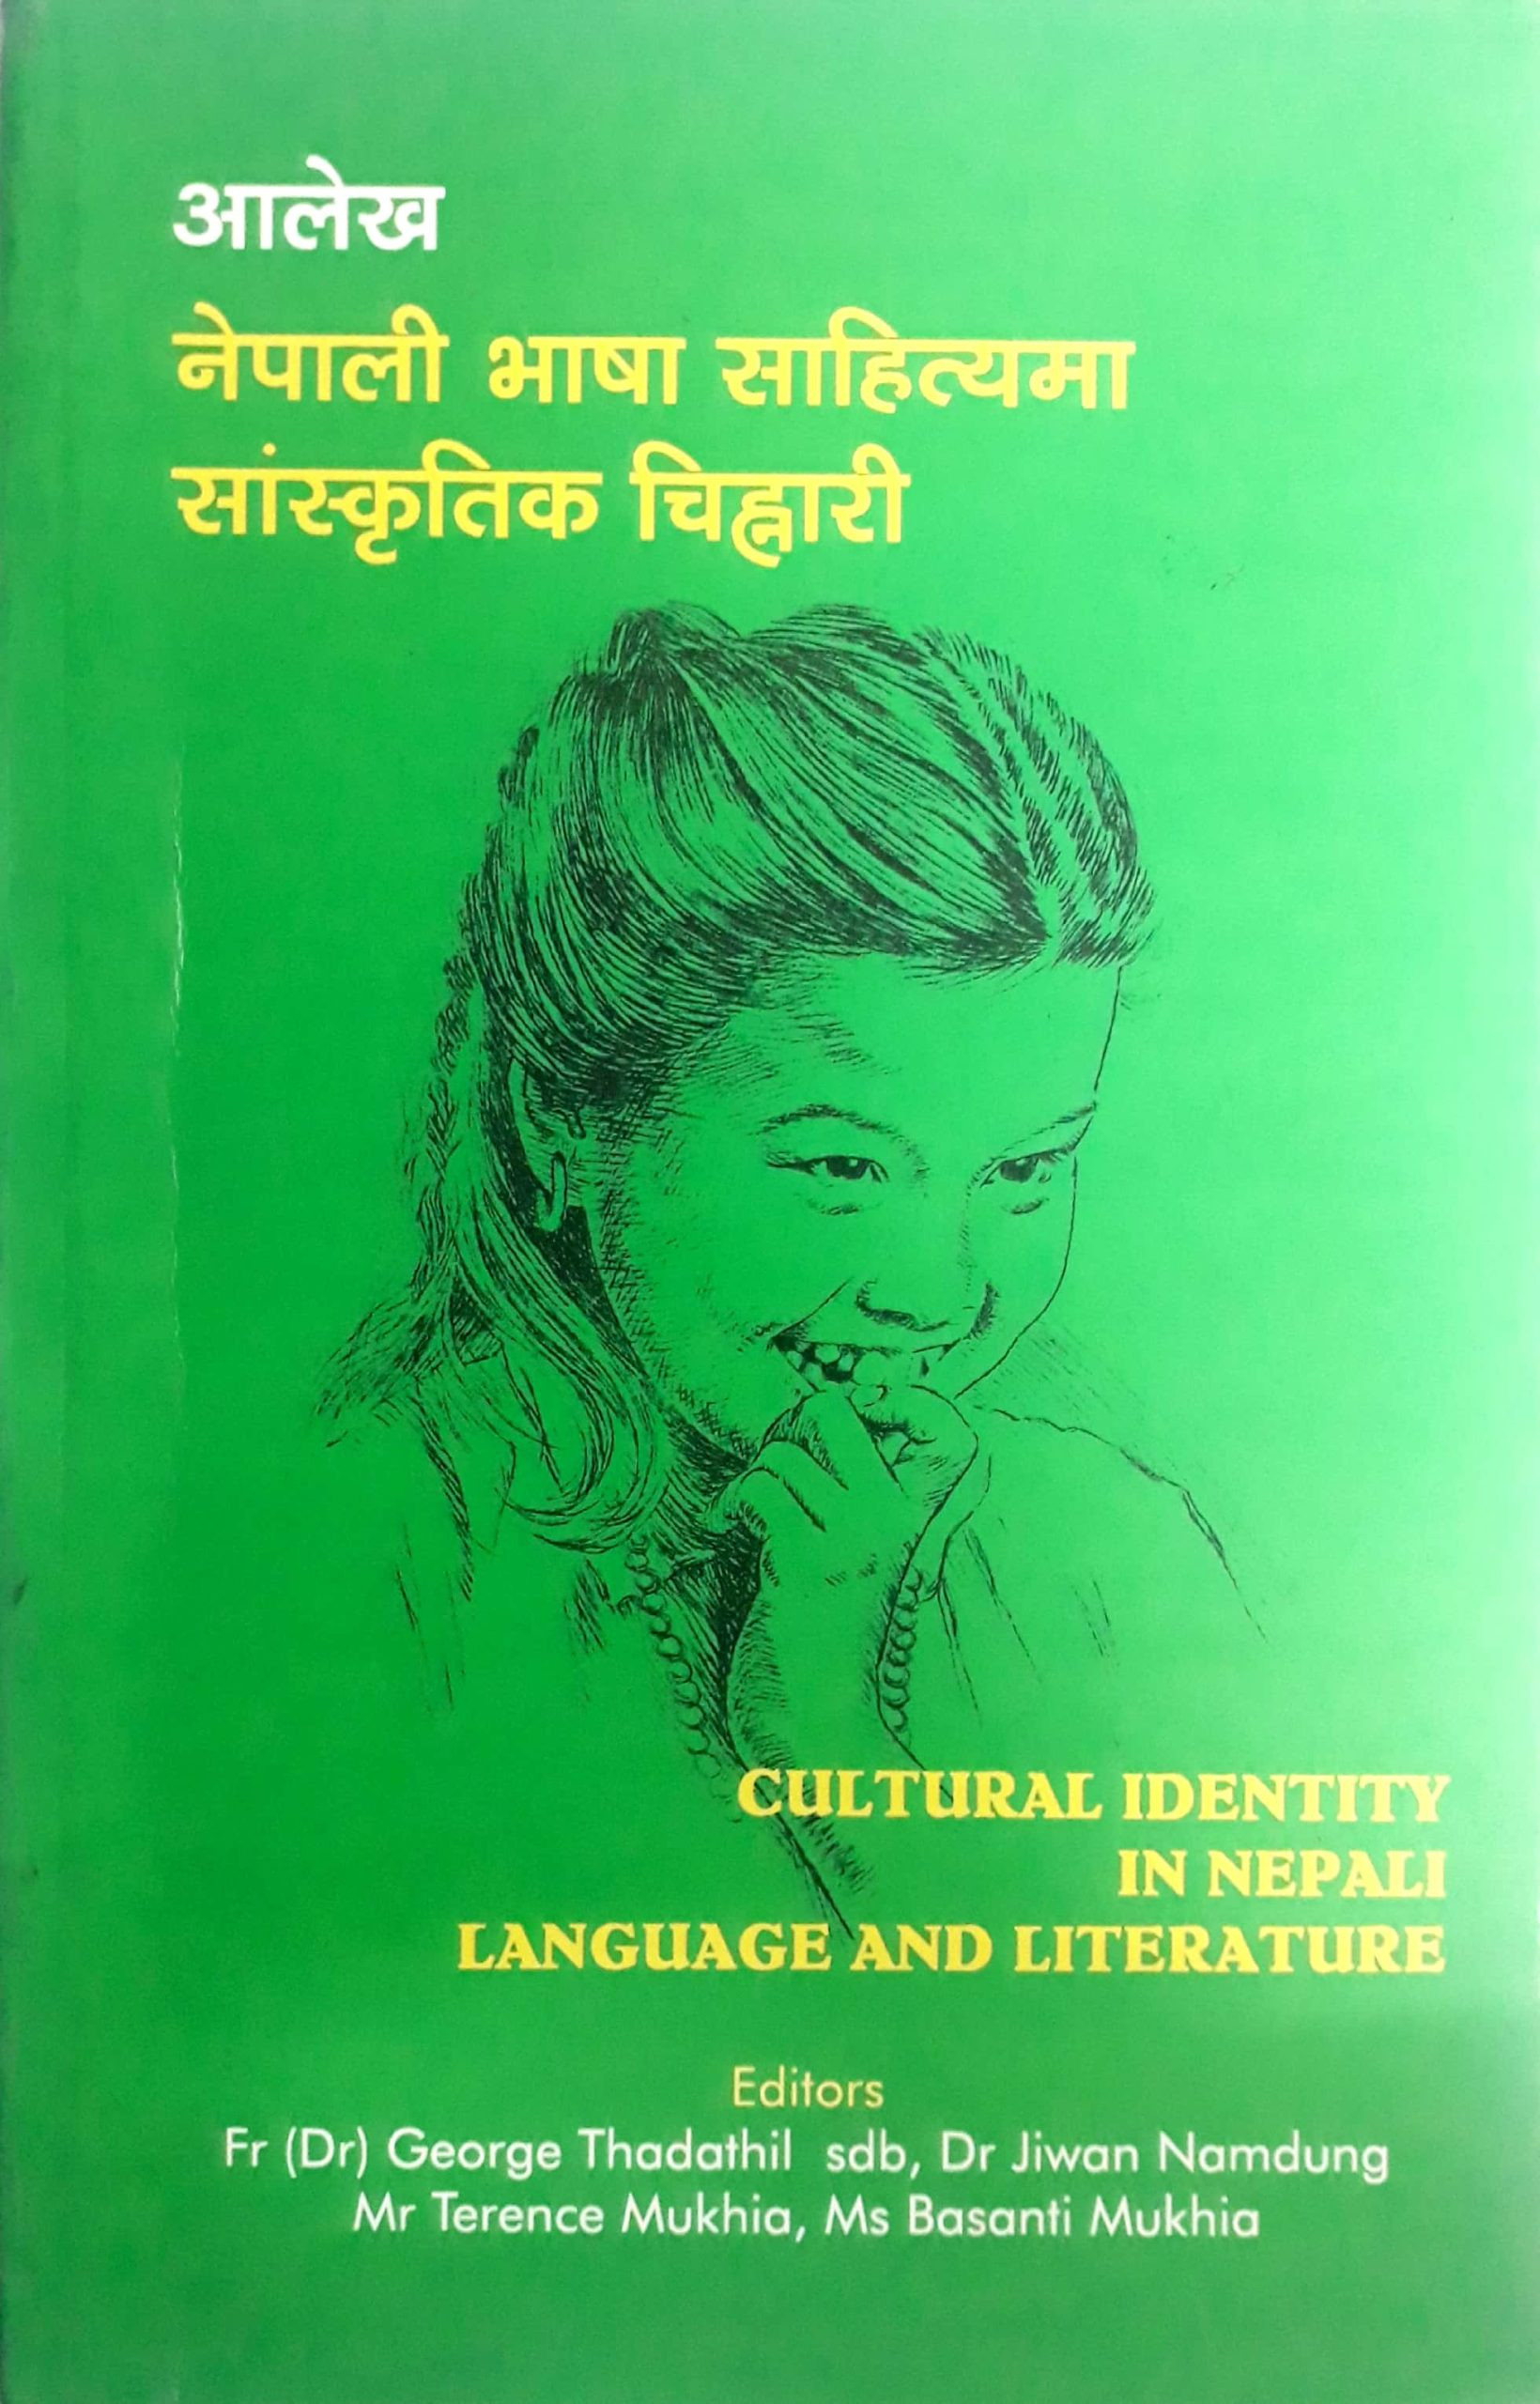 Cultural identity in Nepali language and literature